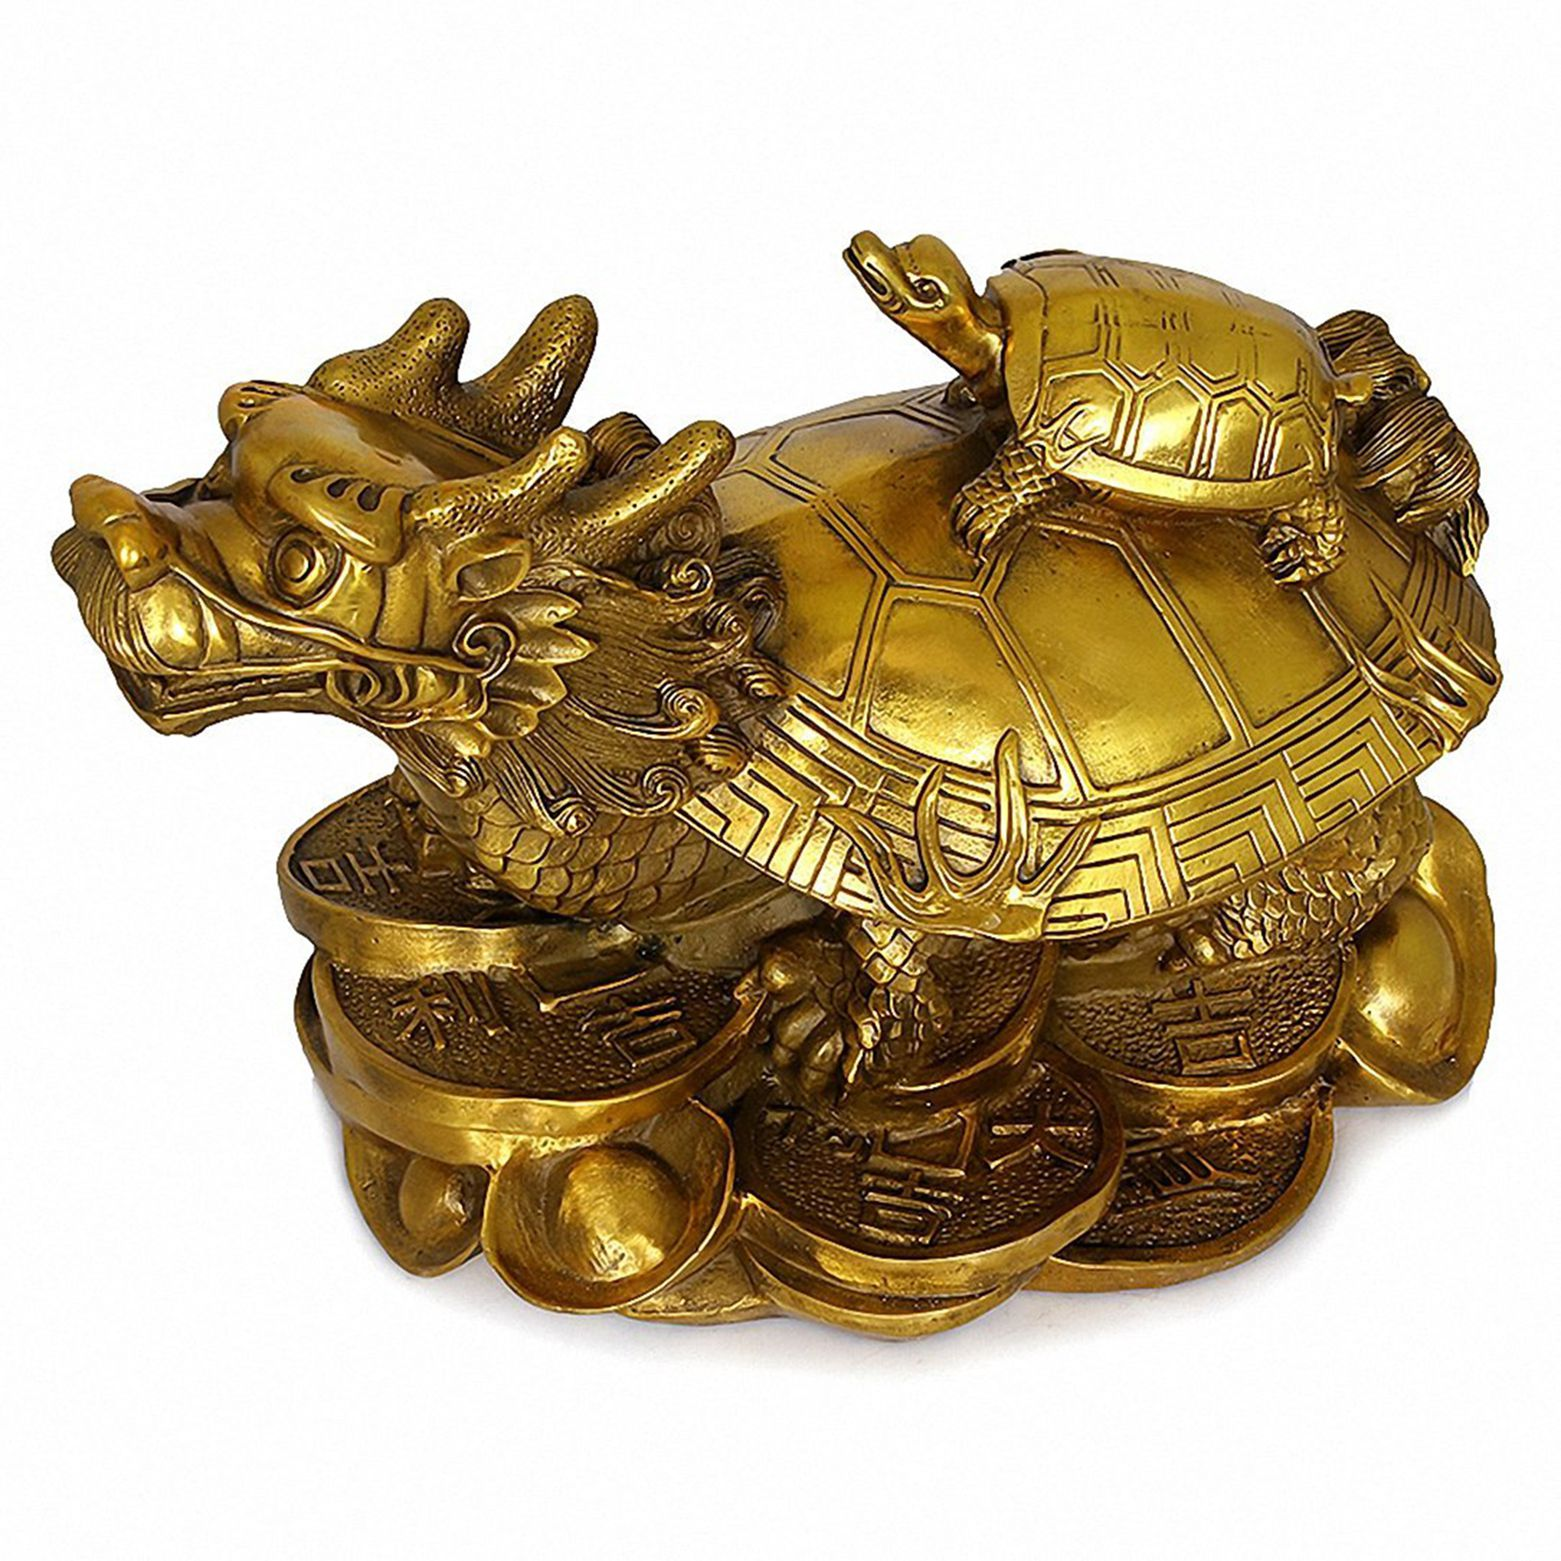 feng shui use of dragon turtles. Black Bedroom Furniture Sets. Home Design Ideas